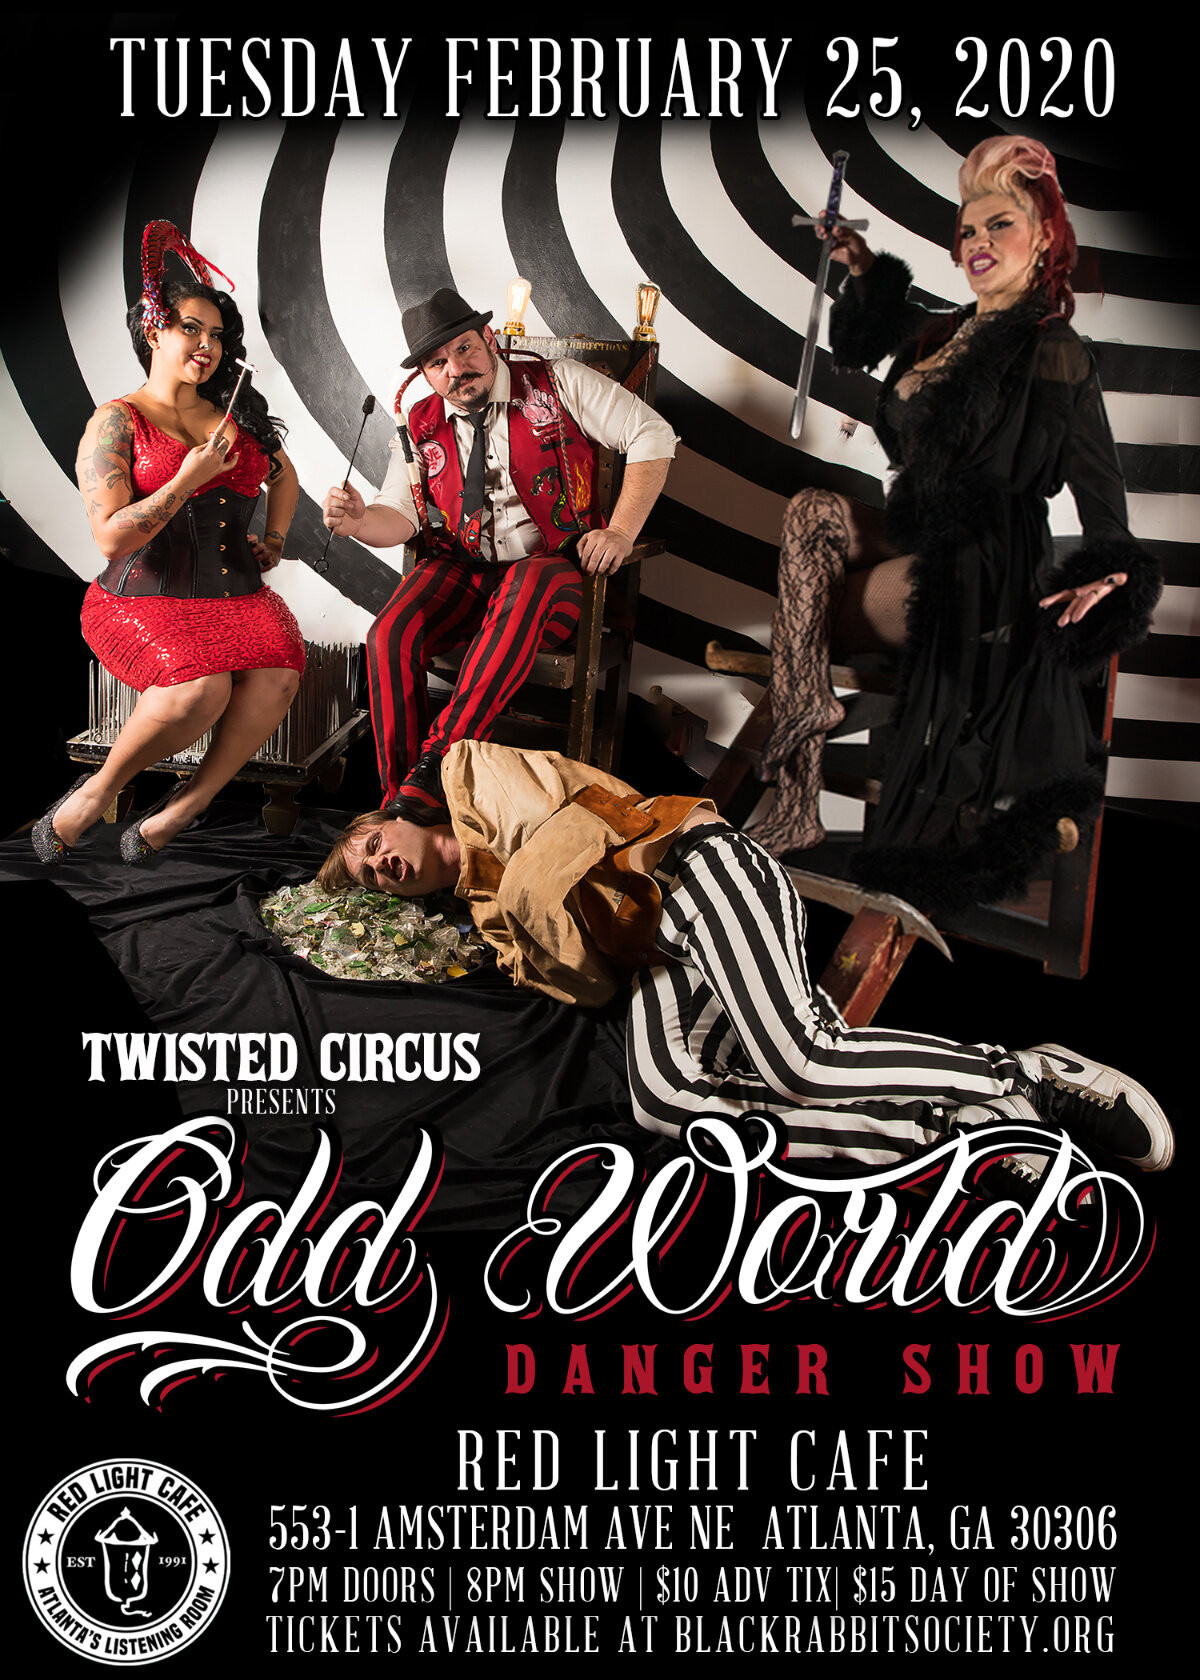 Twisted Circus presents: The Odd World Danger Show — February 25, 2020 — Red Light Café, Atlanta, GA